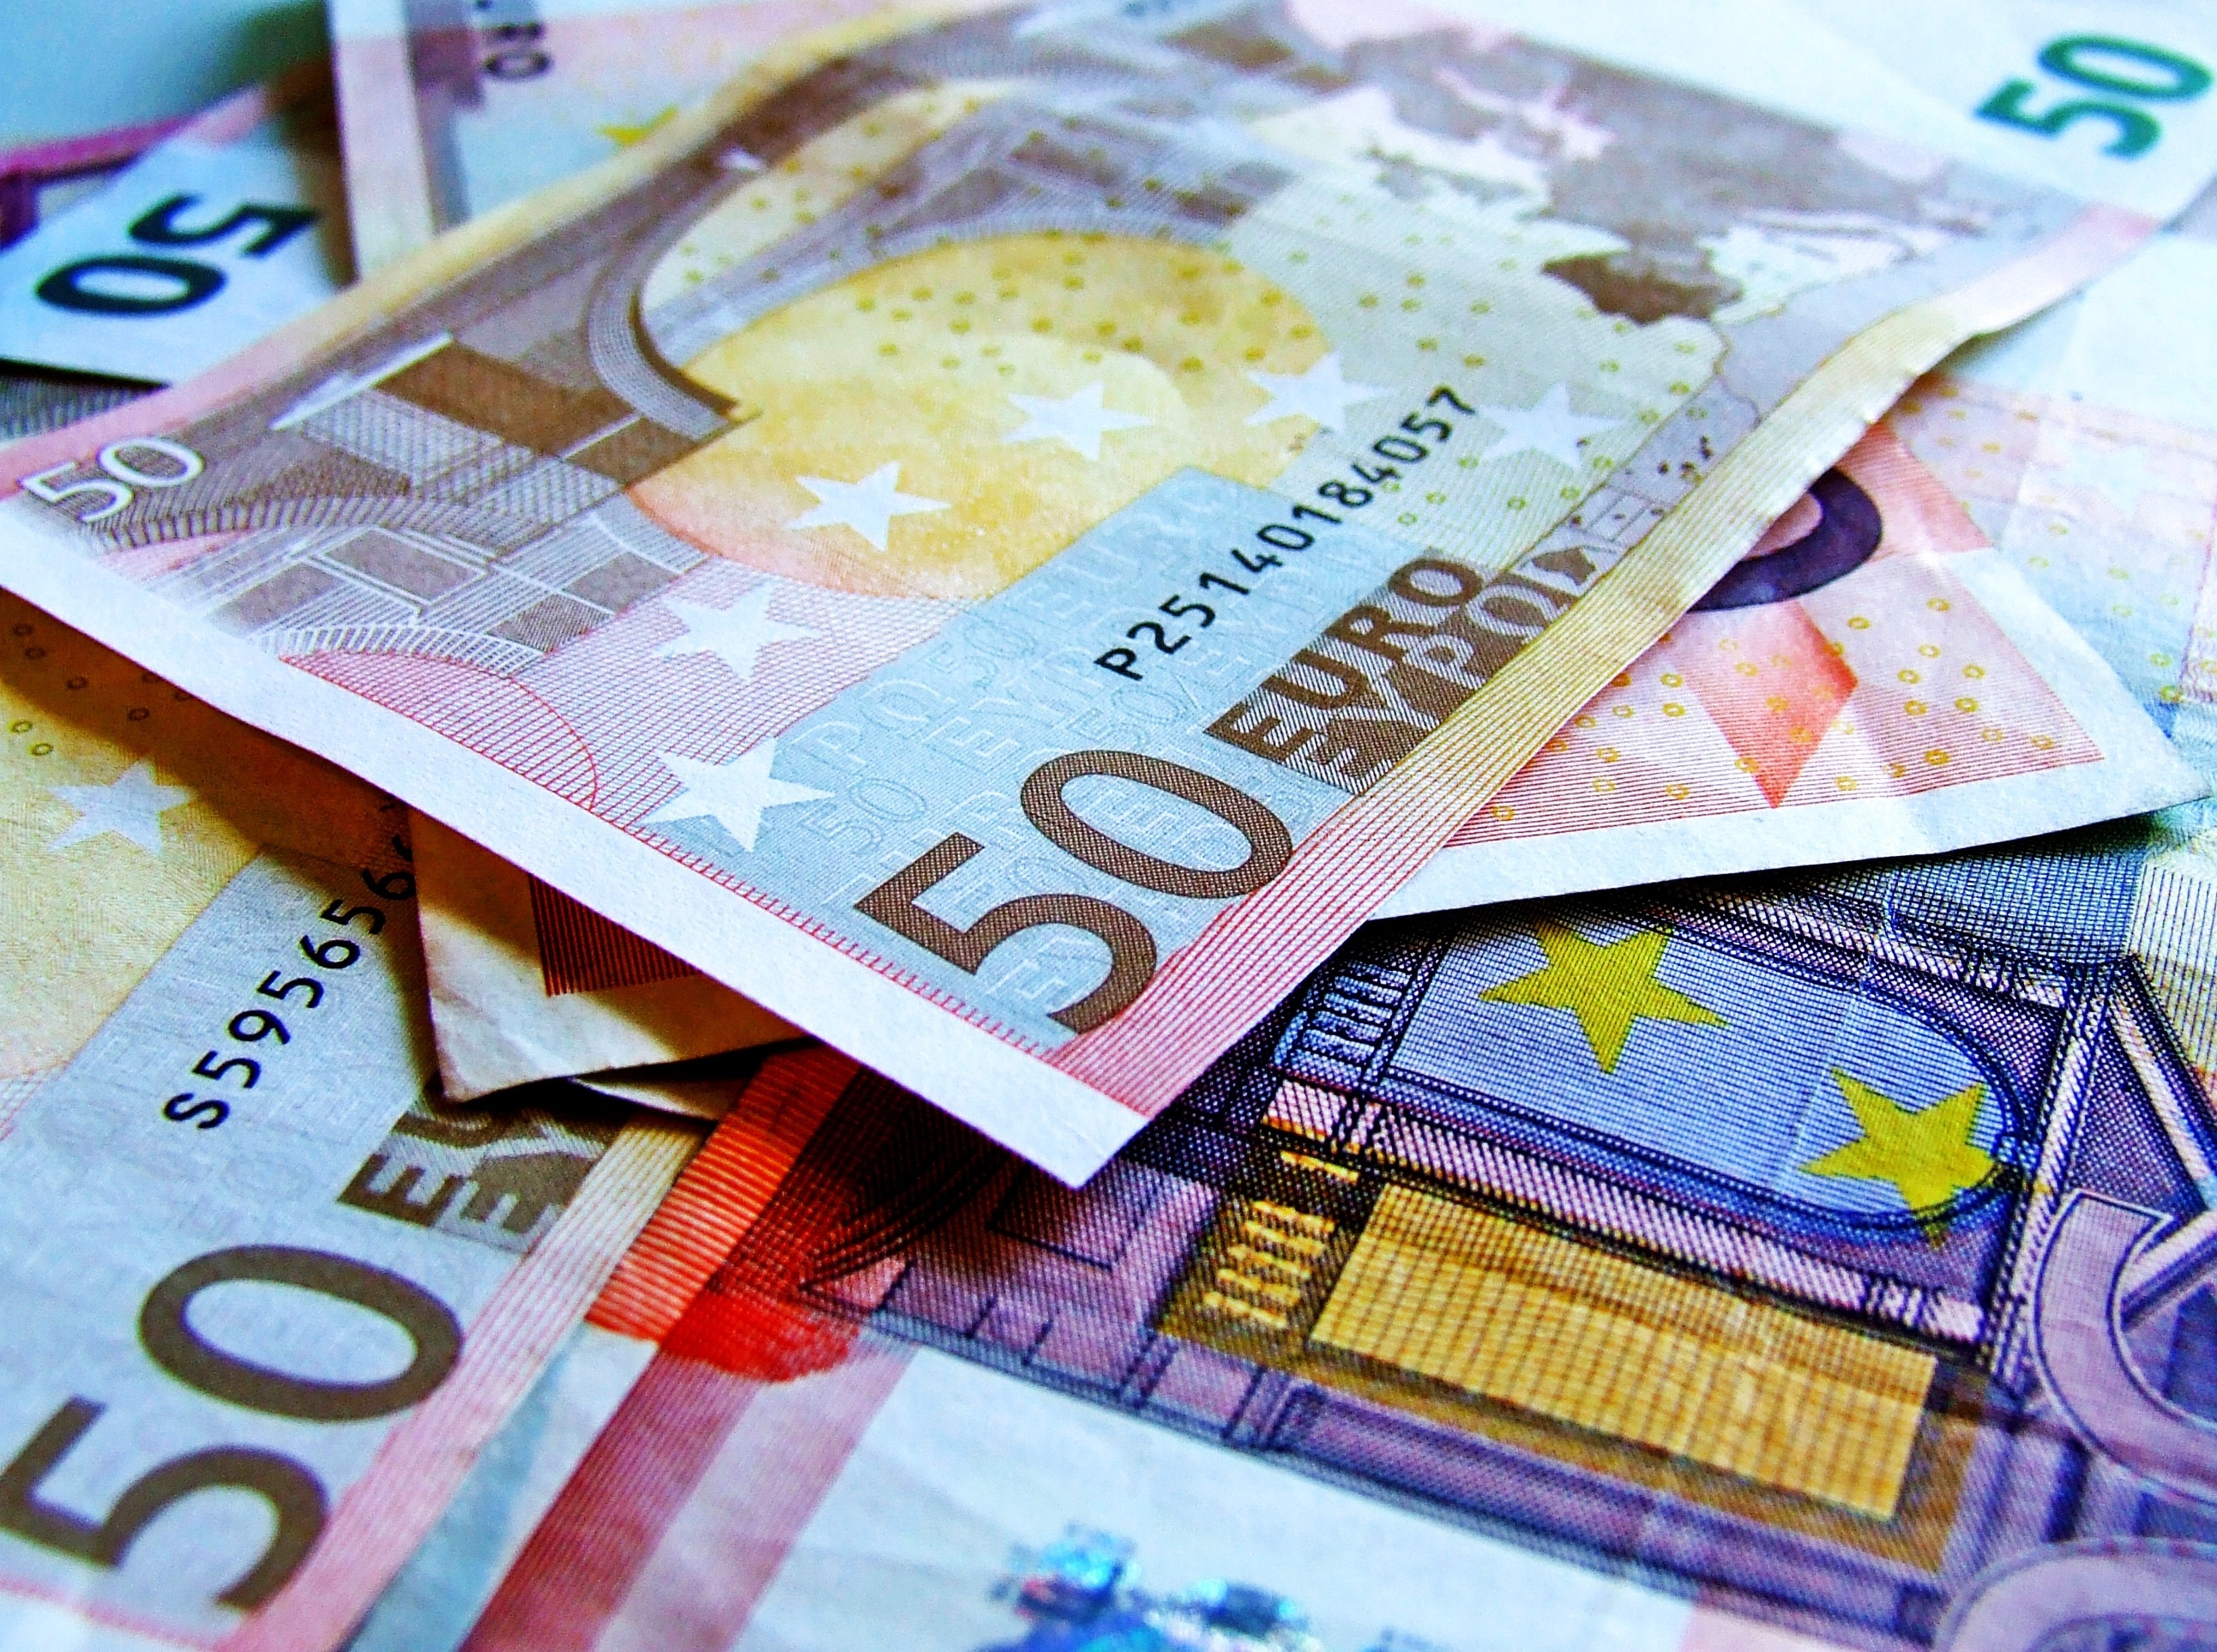 Image of Euros, the currency in Luxembourg